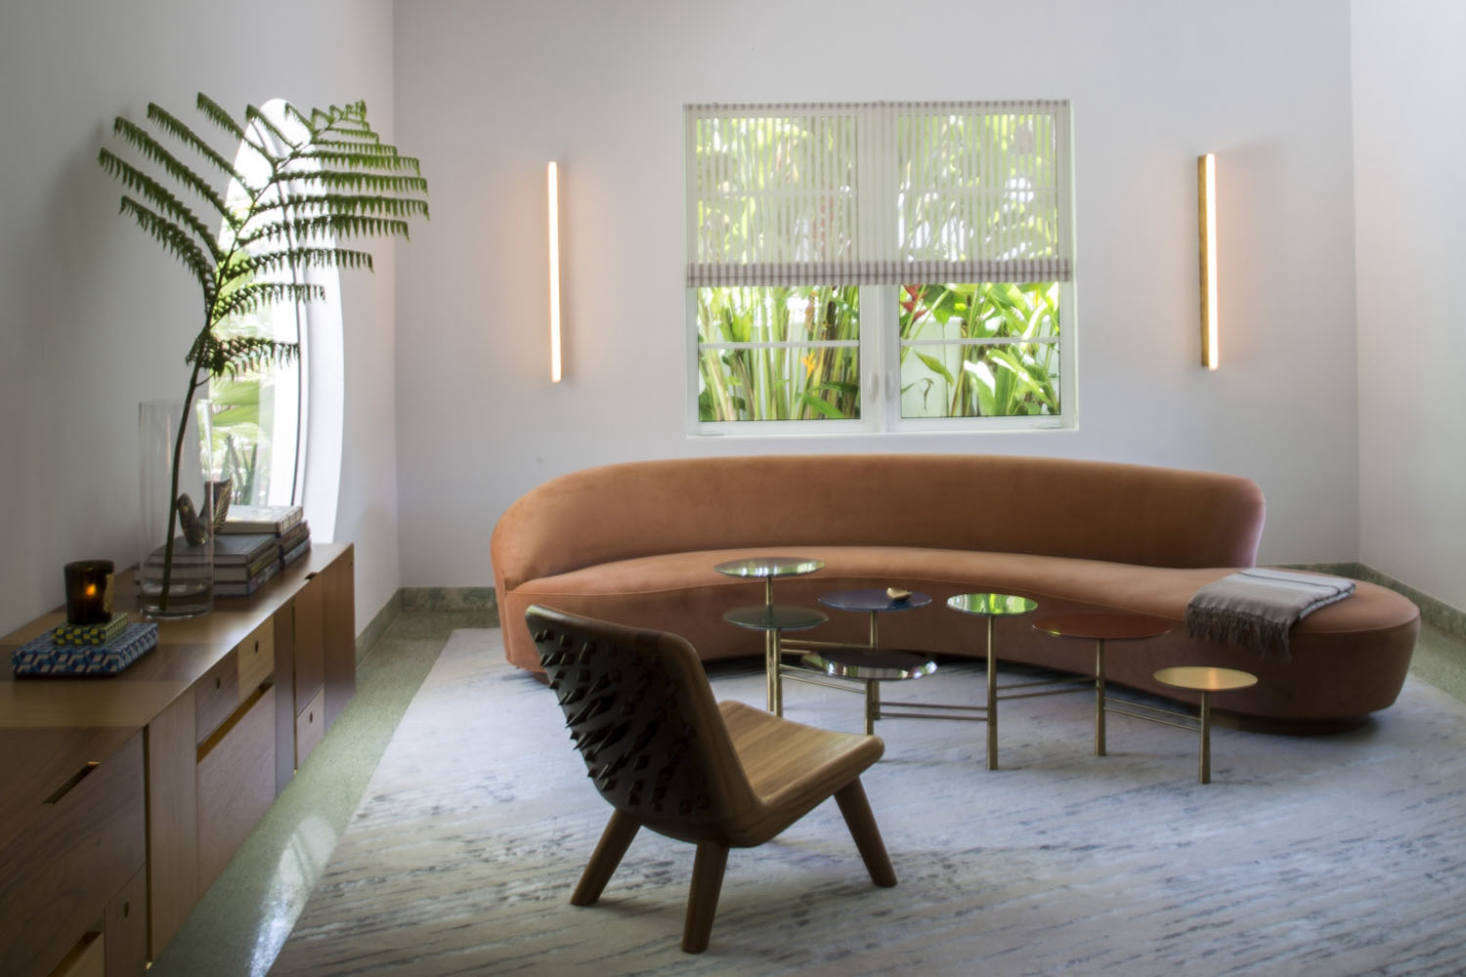 "Seen here in the Miami Beach home of Stephan Weishaupt is the original Vladimir Kagan Serpentine Sofa with Arm from 50 in coral velvet. ""I wanted an organic shape floating in the space,"" says Weishaupt. ""I think it goes nicely with the round window."" The sofa, model 0BSA, is still available to order through a Vladimir Kagan showroom; contact for pricing and more information."